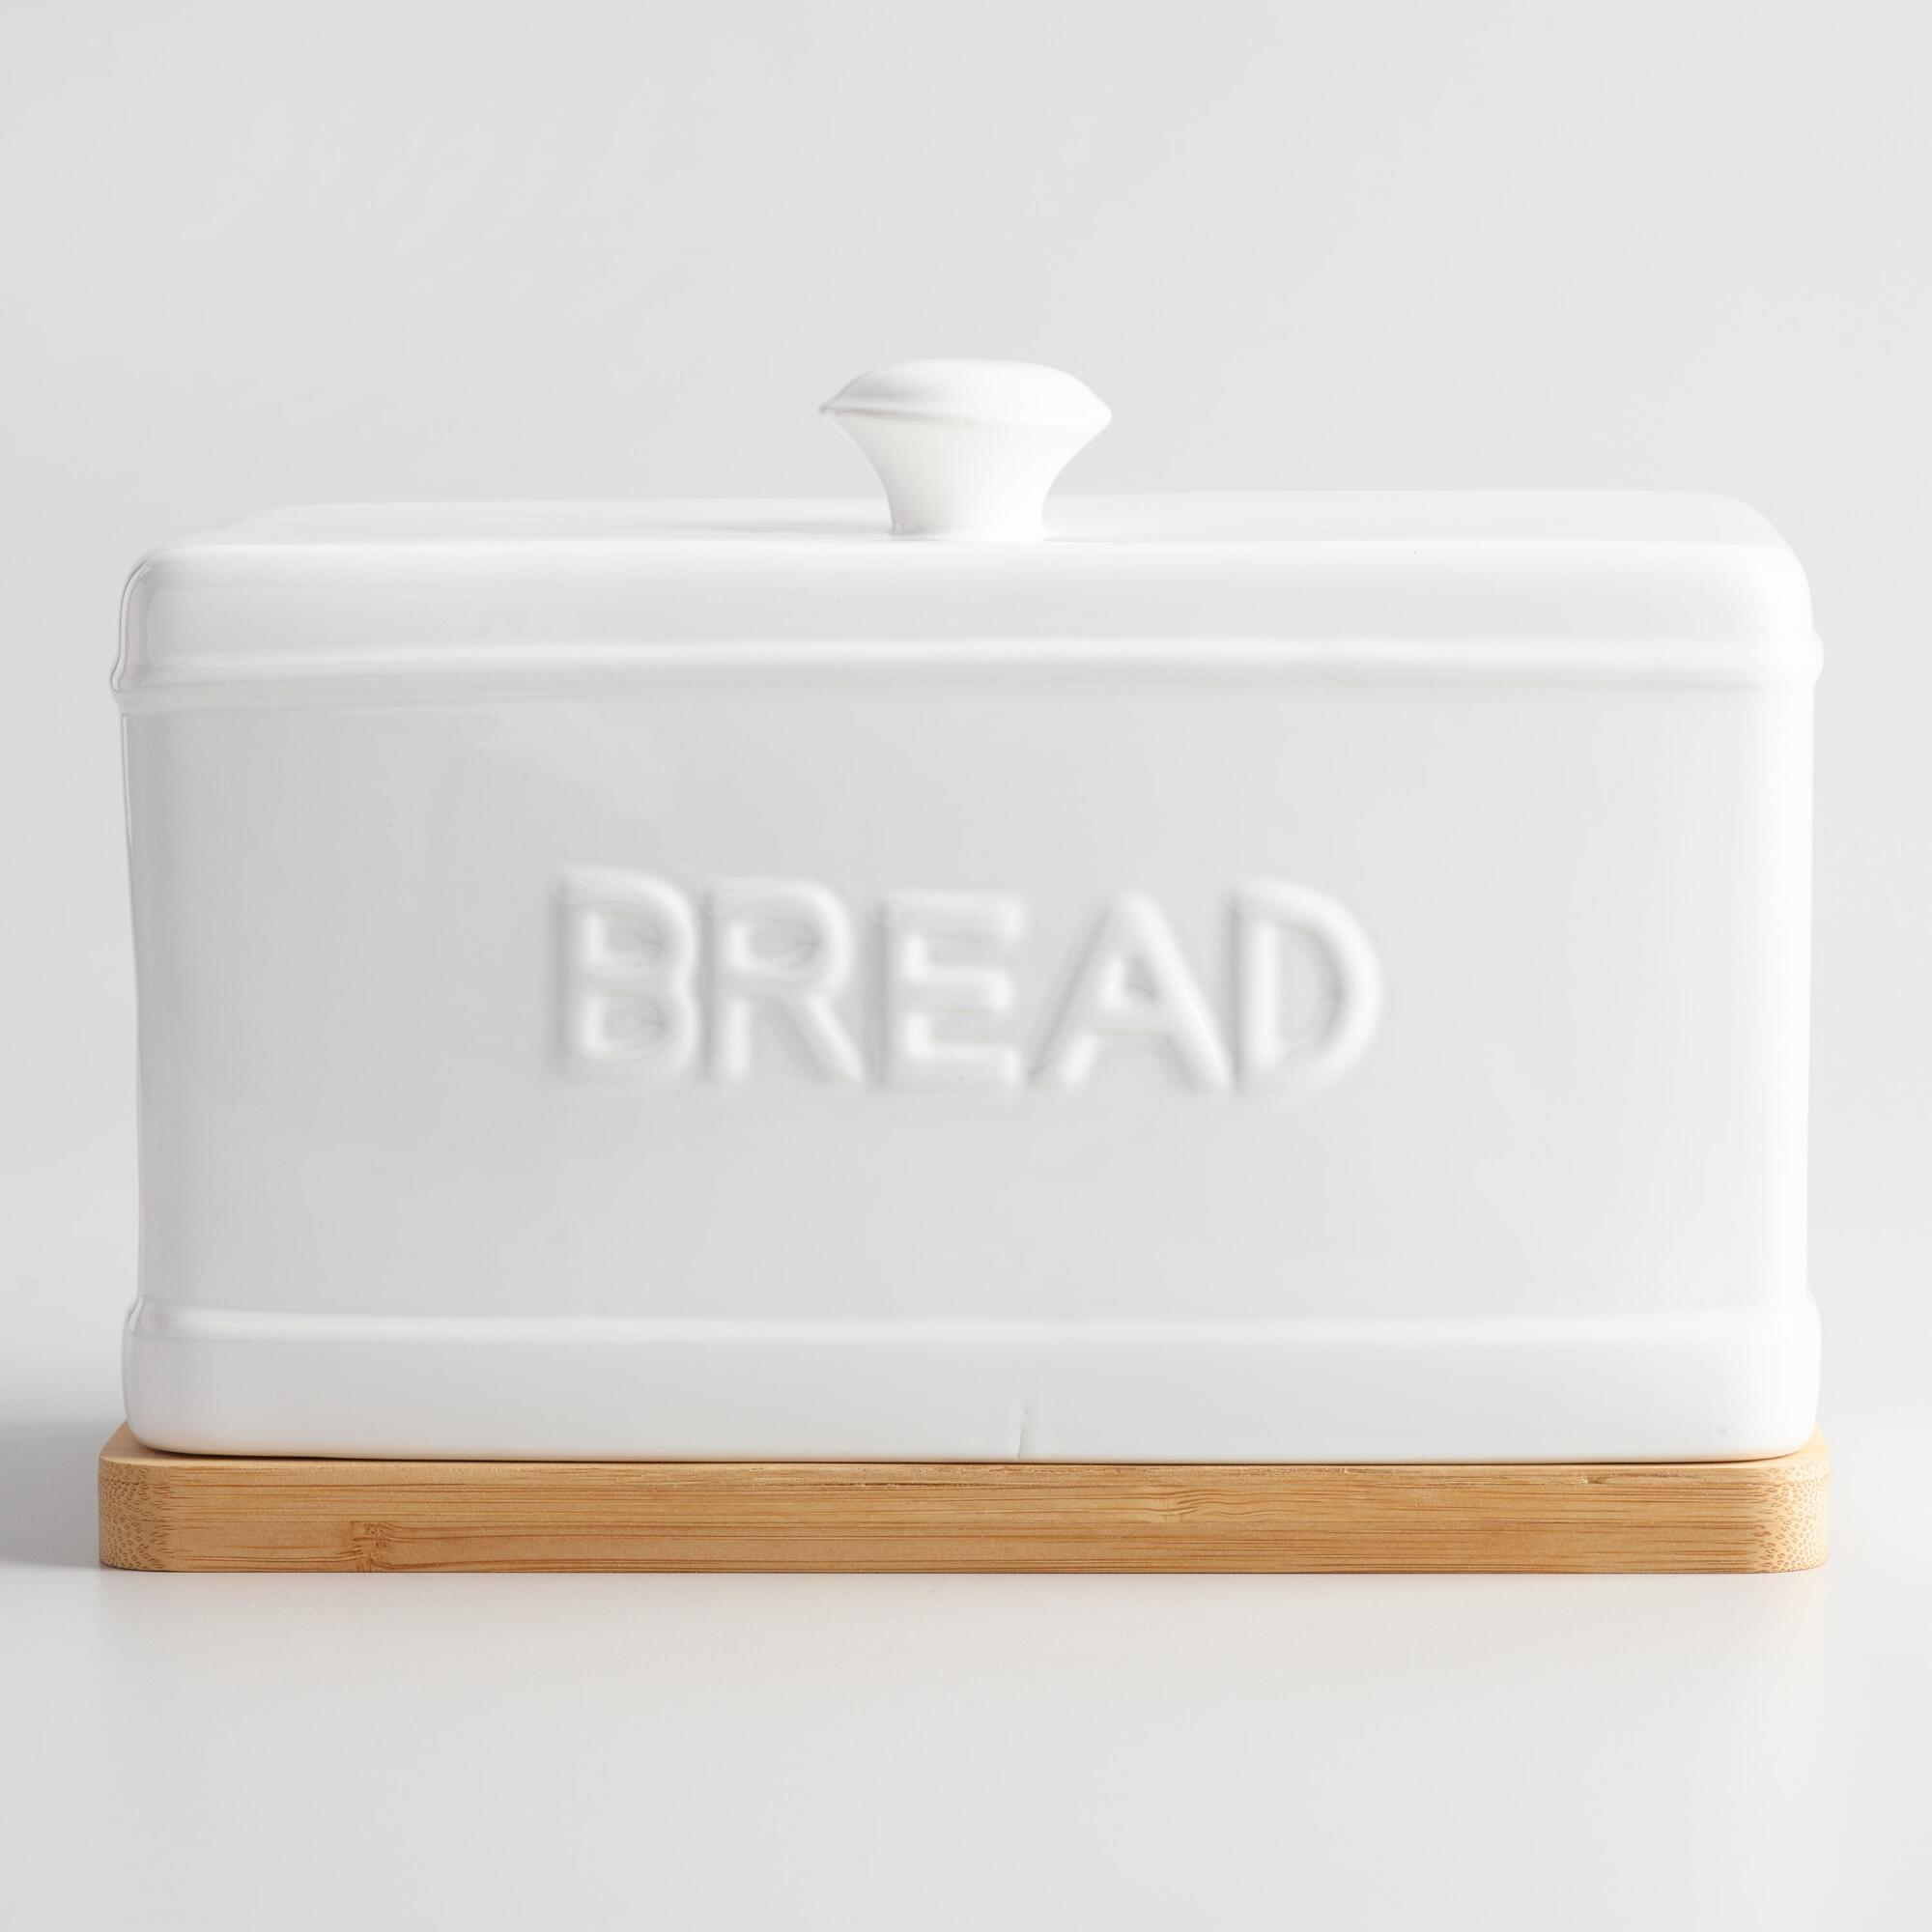 Ceramic Bread Box with Wood Cutting Board by World Market